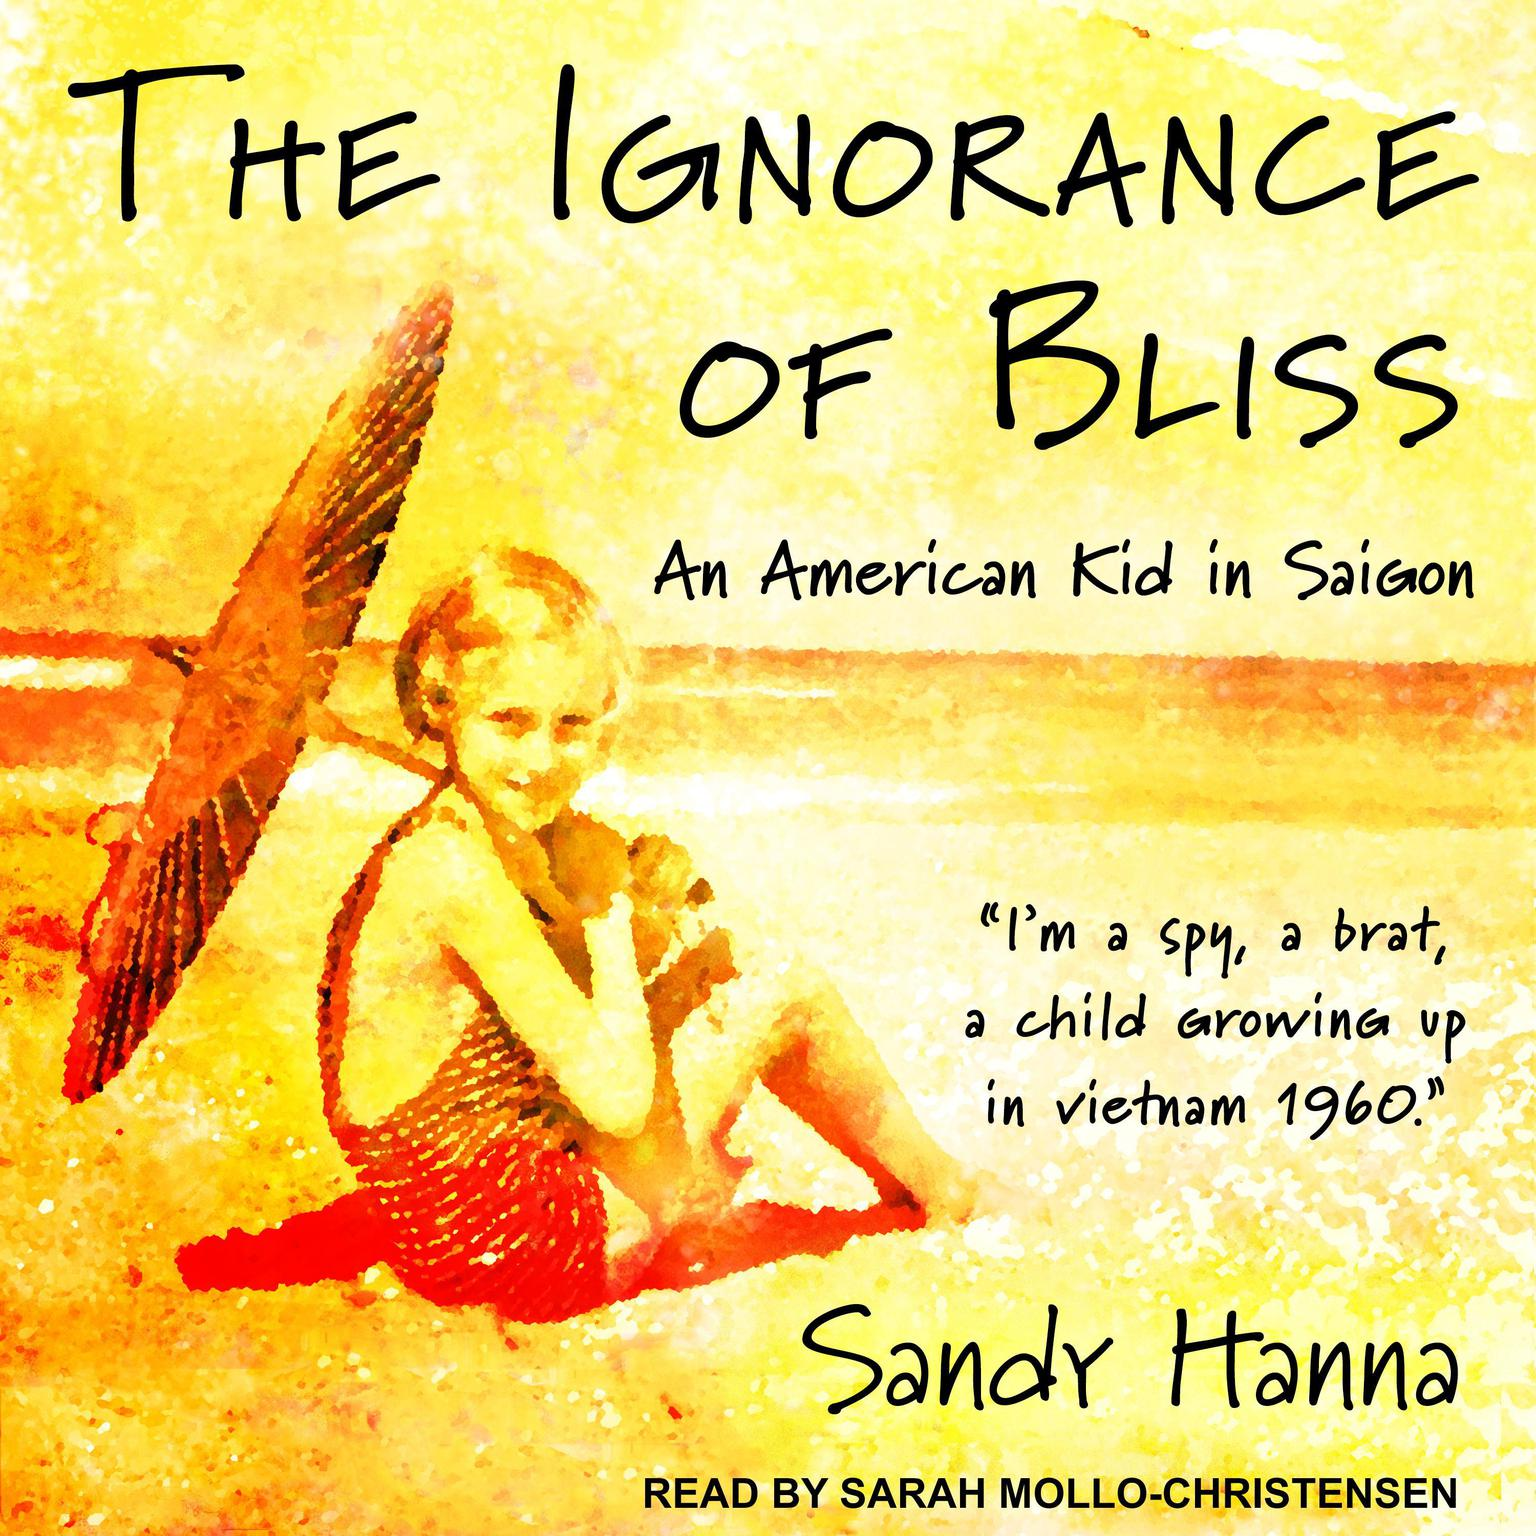 Printable The Ignorance of Bliss: An American Kid in Saigon Audiobook Cover Art